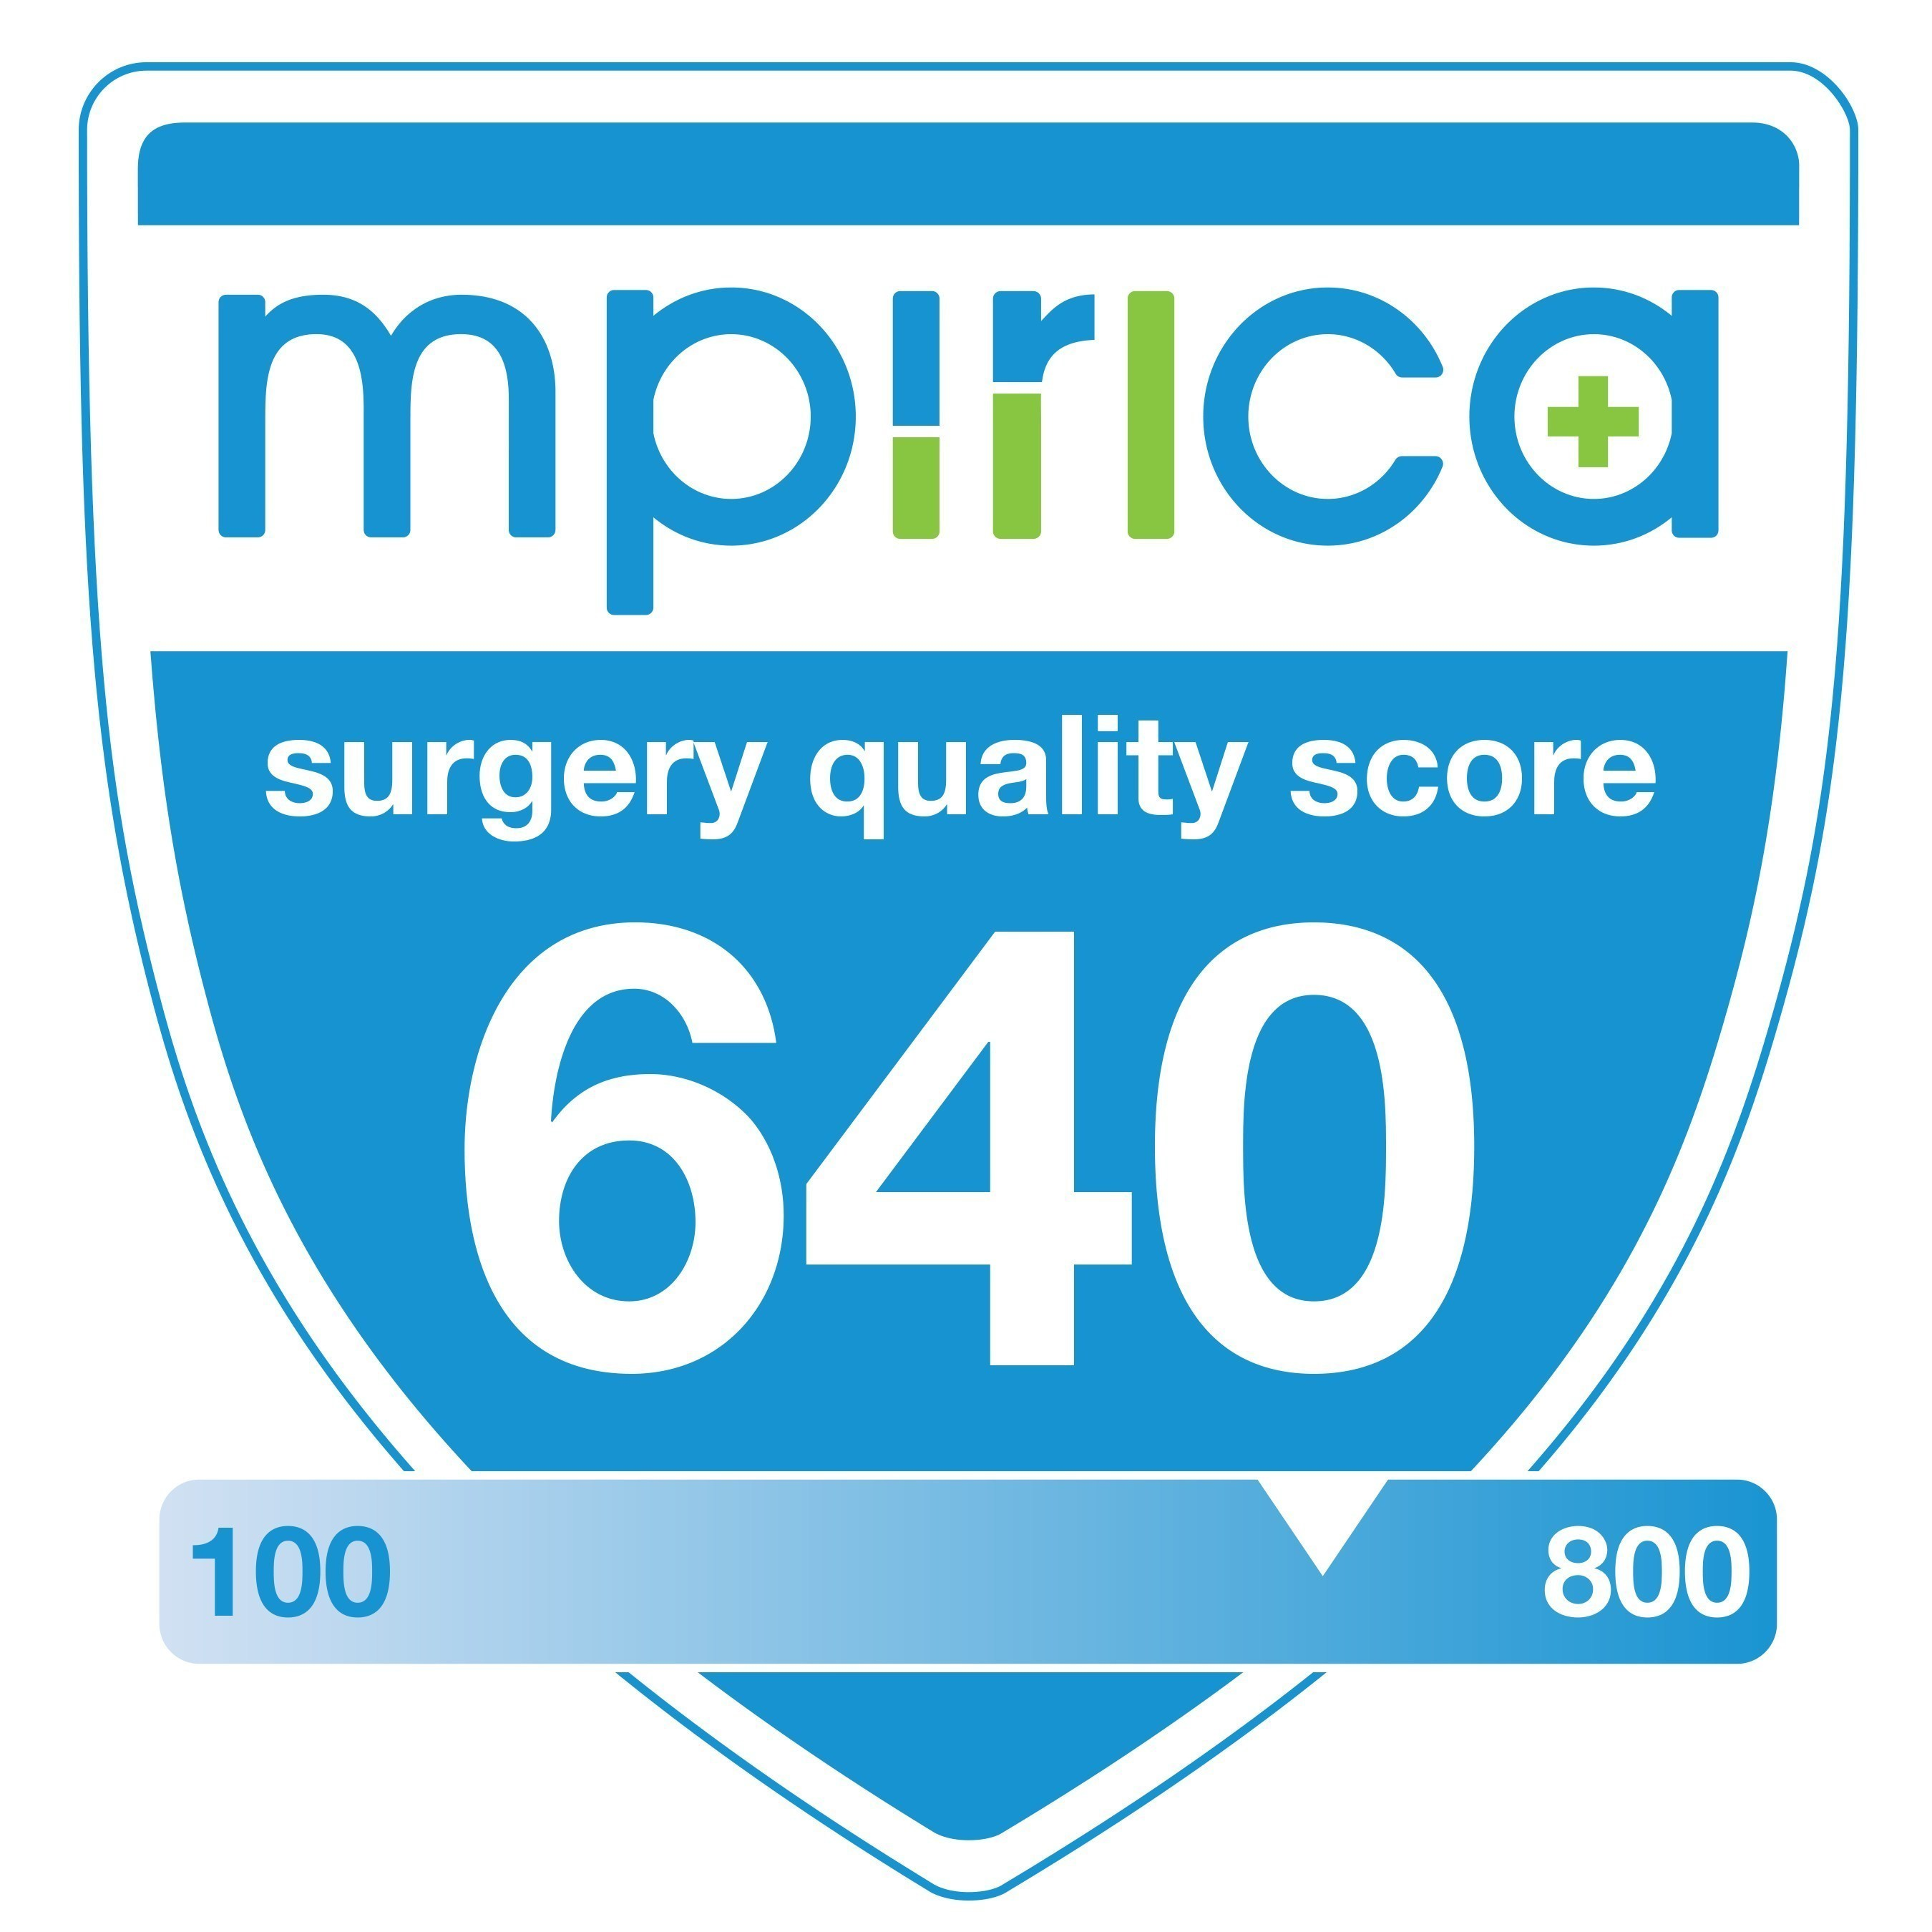 MPIRICA Quality Score measures surgery clinical outcomes to help patients make informed decisions. It was created to help demystify healthcare quality transparency for consumers at the procedure level, and is based on past performance of hospitals and surgeons throughout the U.S.